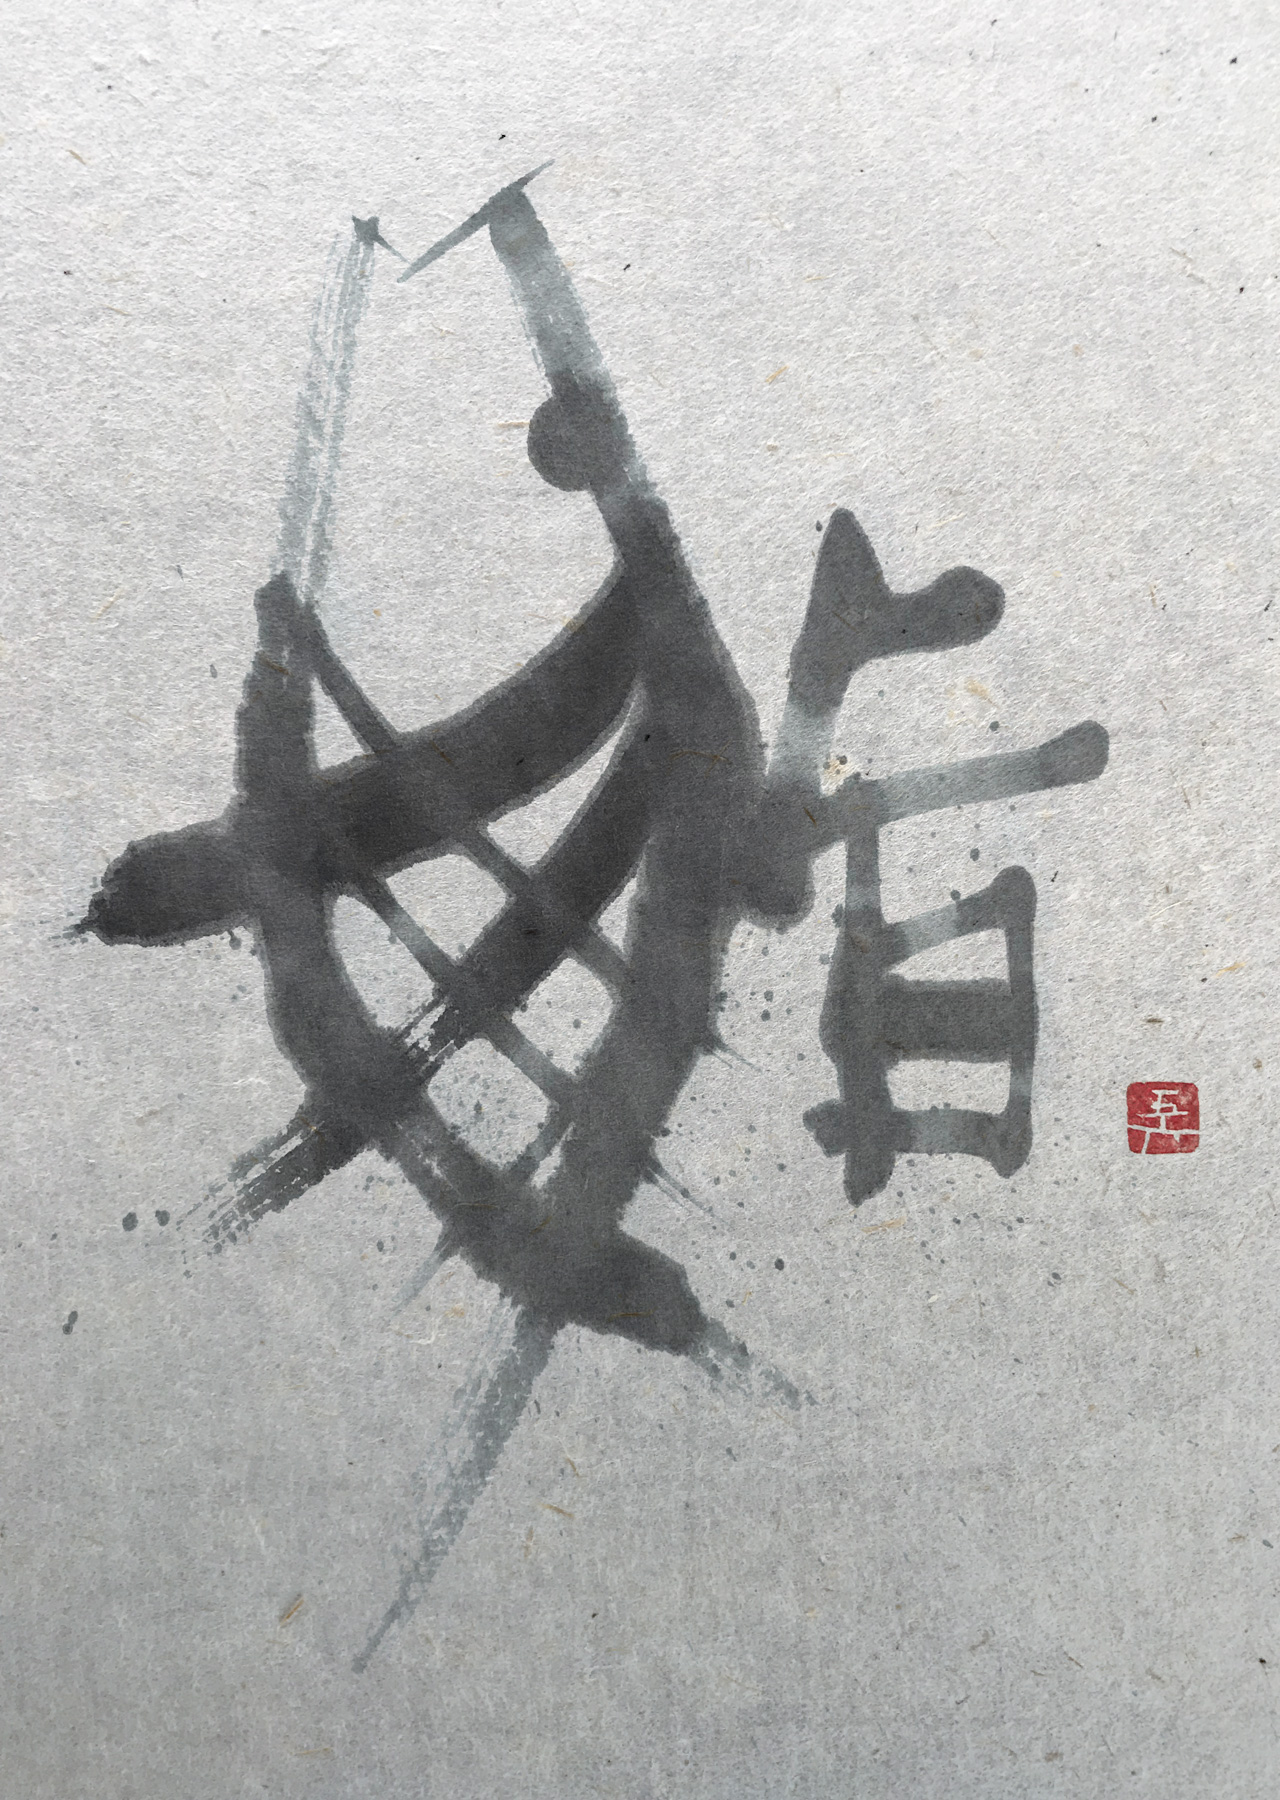 鮨 sushi すし 書道作品 japaneseart japanesecalligraphy